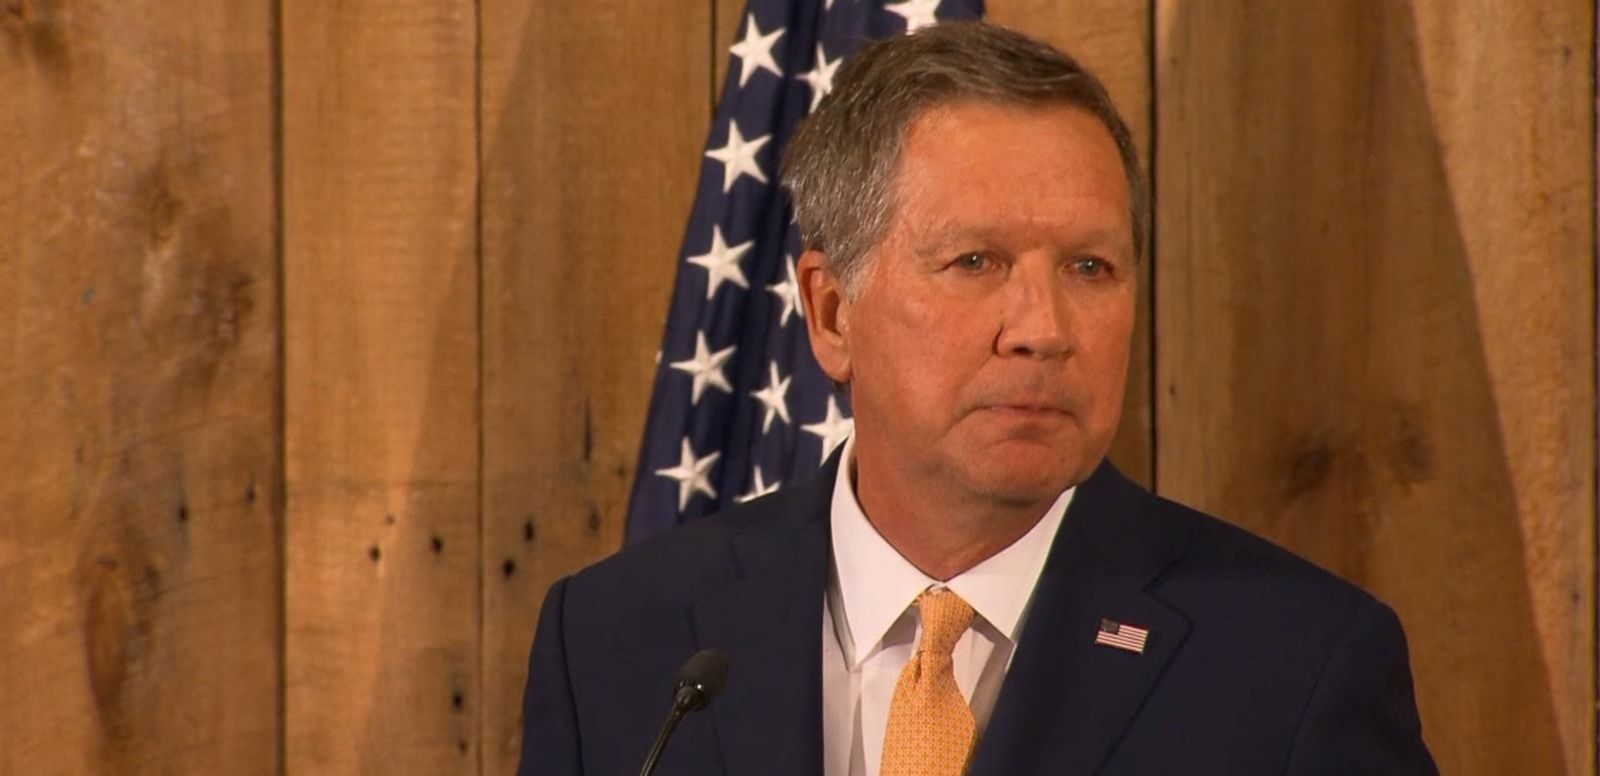 """As I suspend my campaign today, I have renewed faith,"" Kasich said."